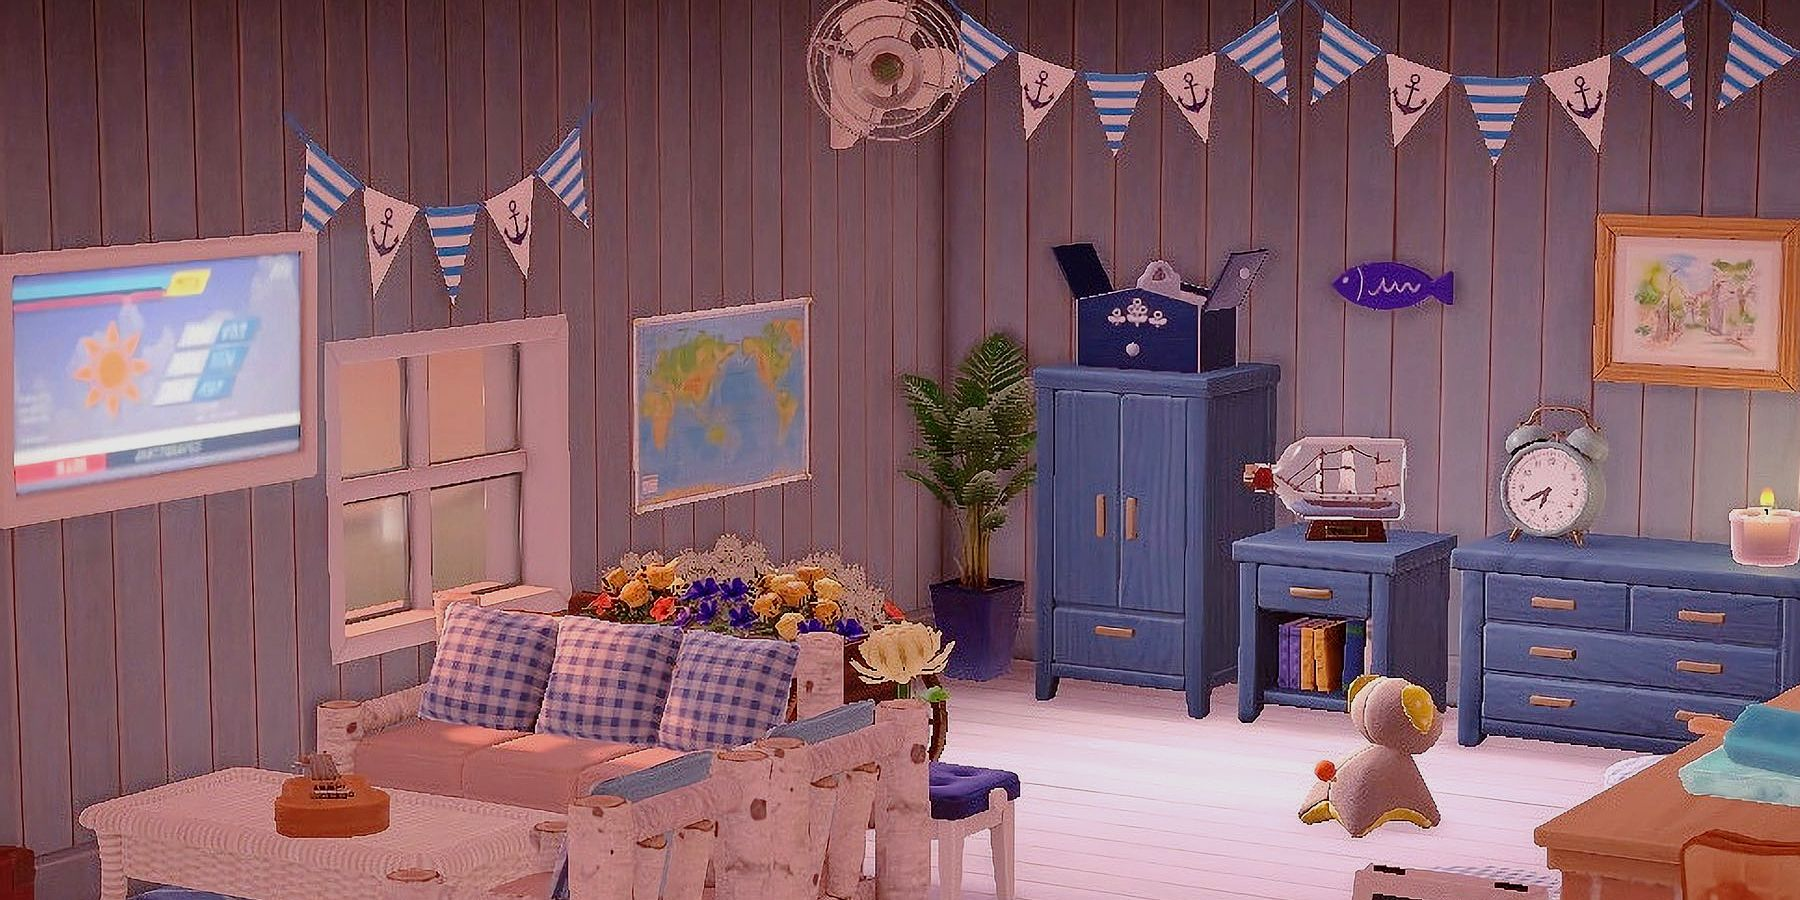 Interior Design Ideas & Tips in Animal Crossing: New Horizons on Animal Crossing Room Ideas New Horizons  id=21397